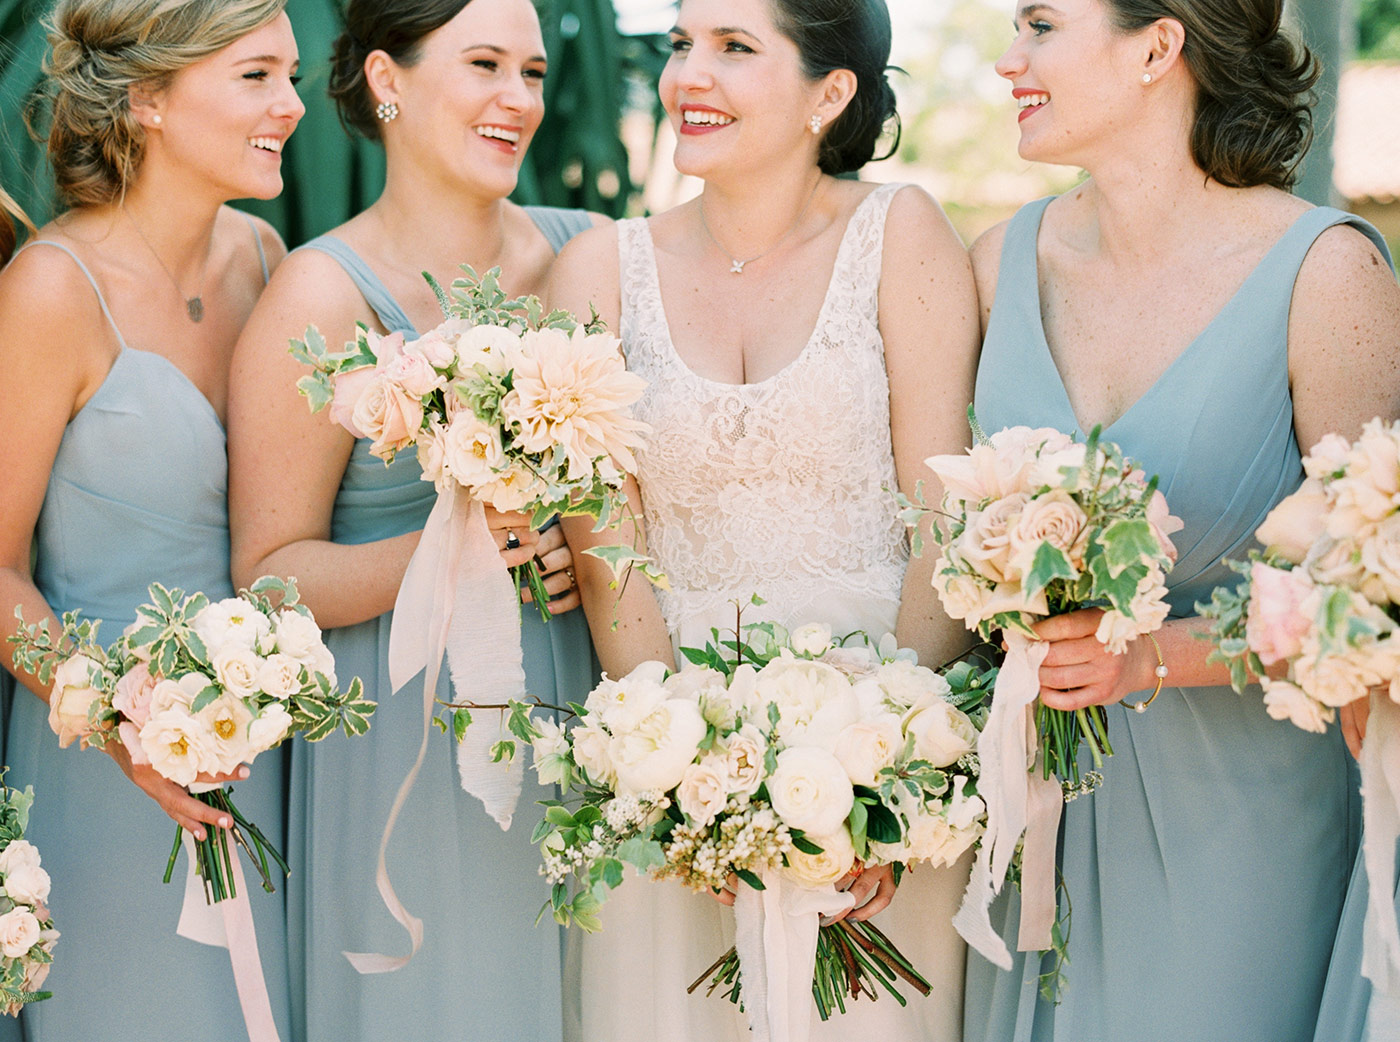 Bride and Bridesmaids with White and Pastel toned bouquets